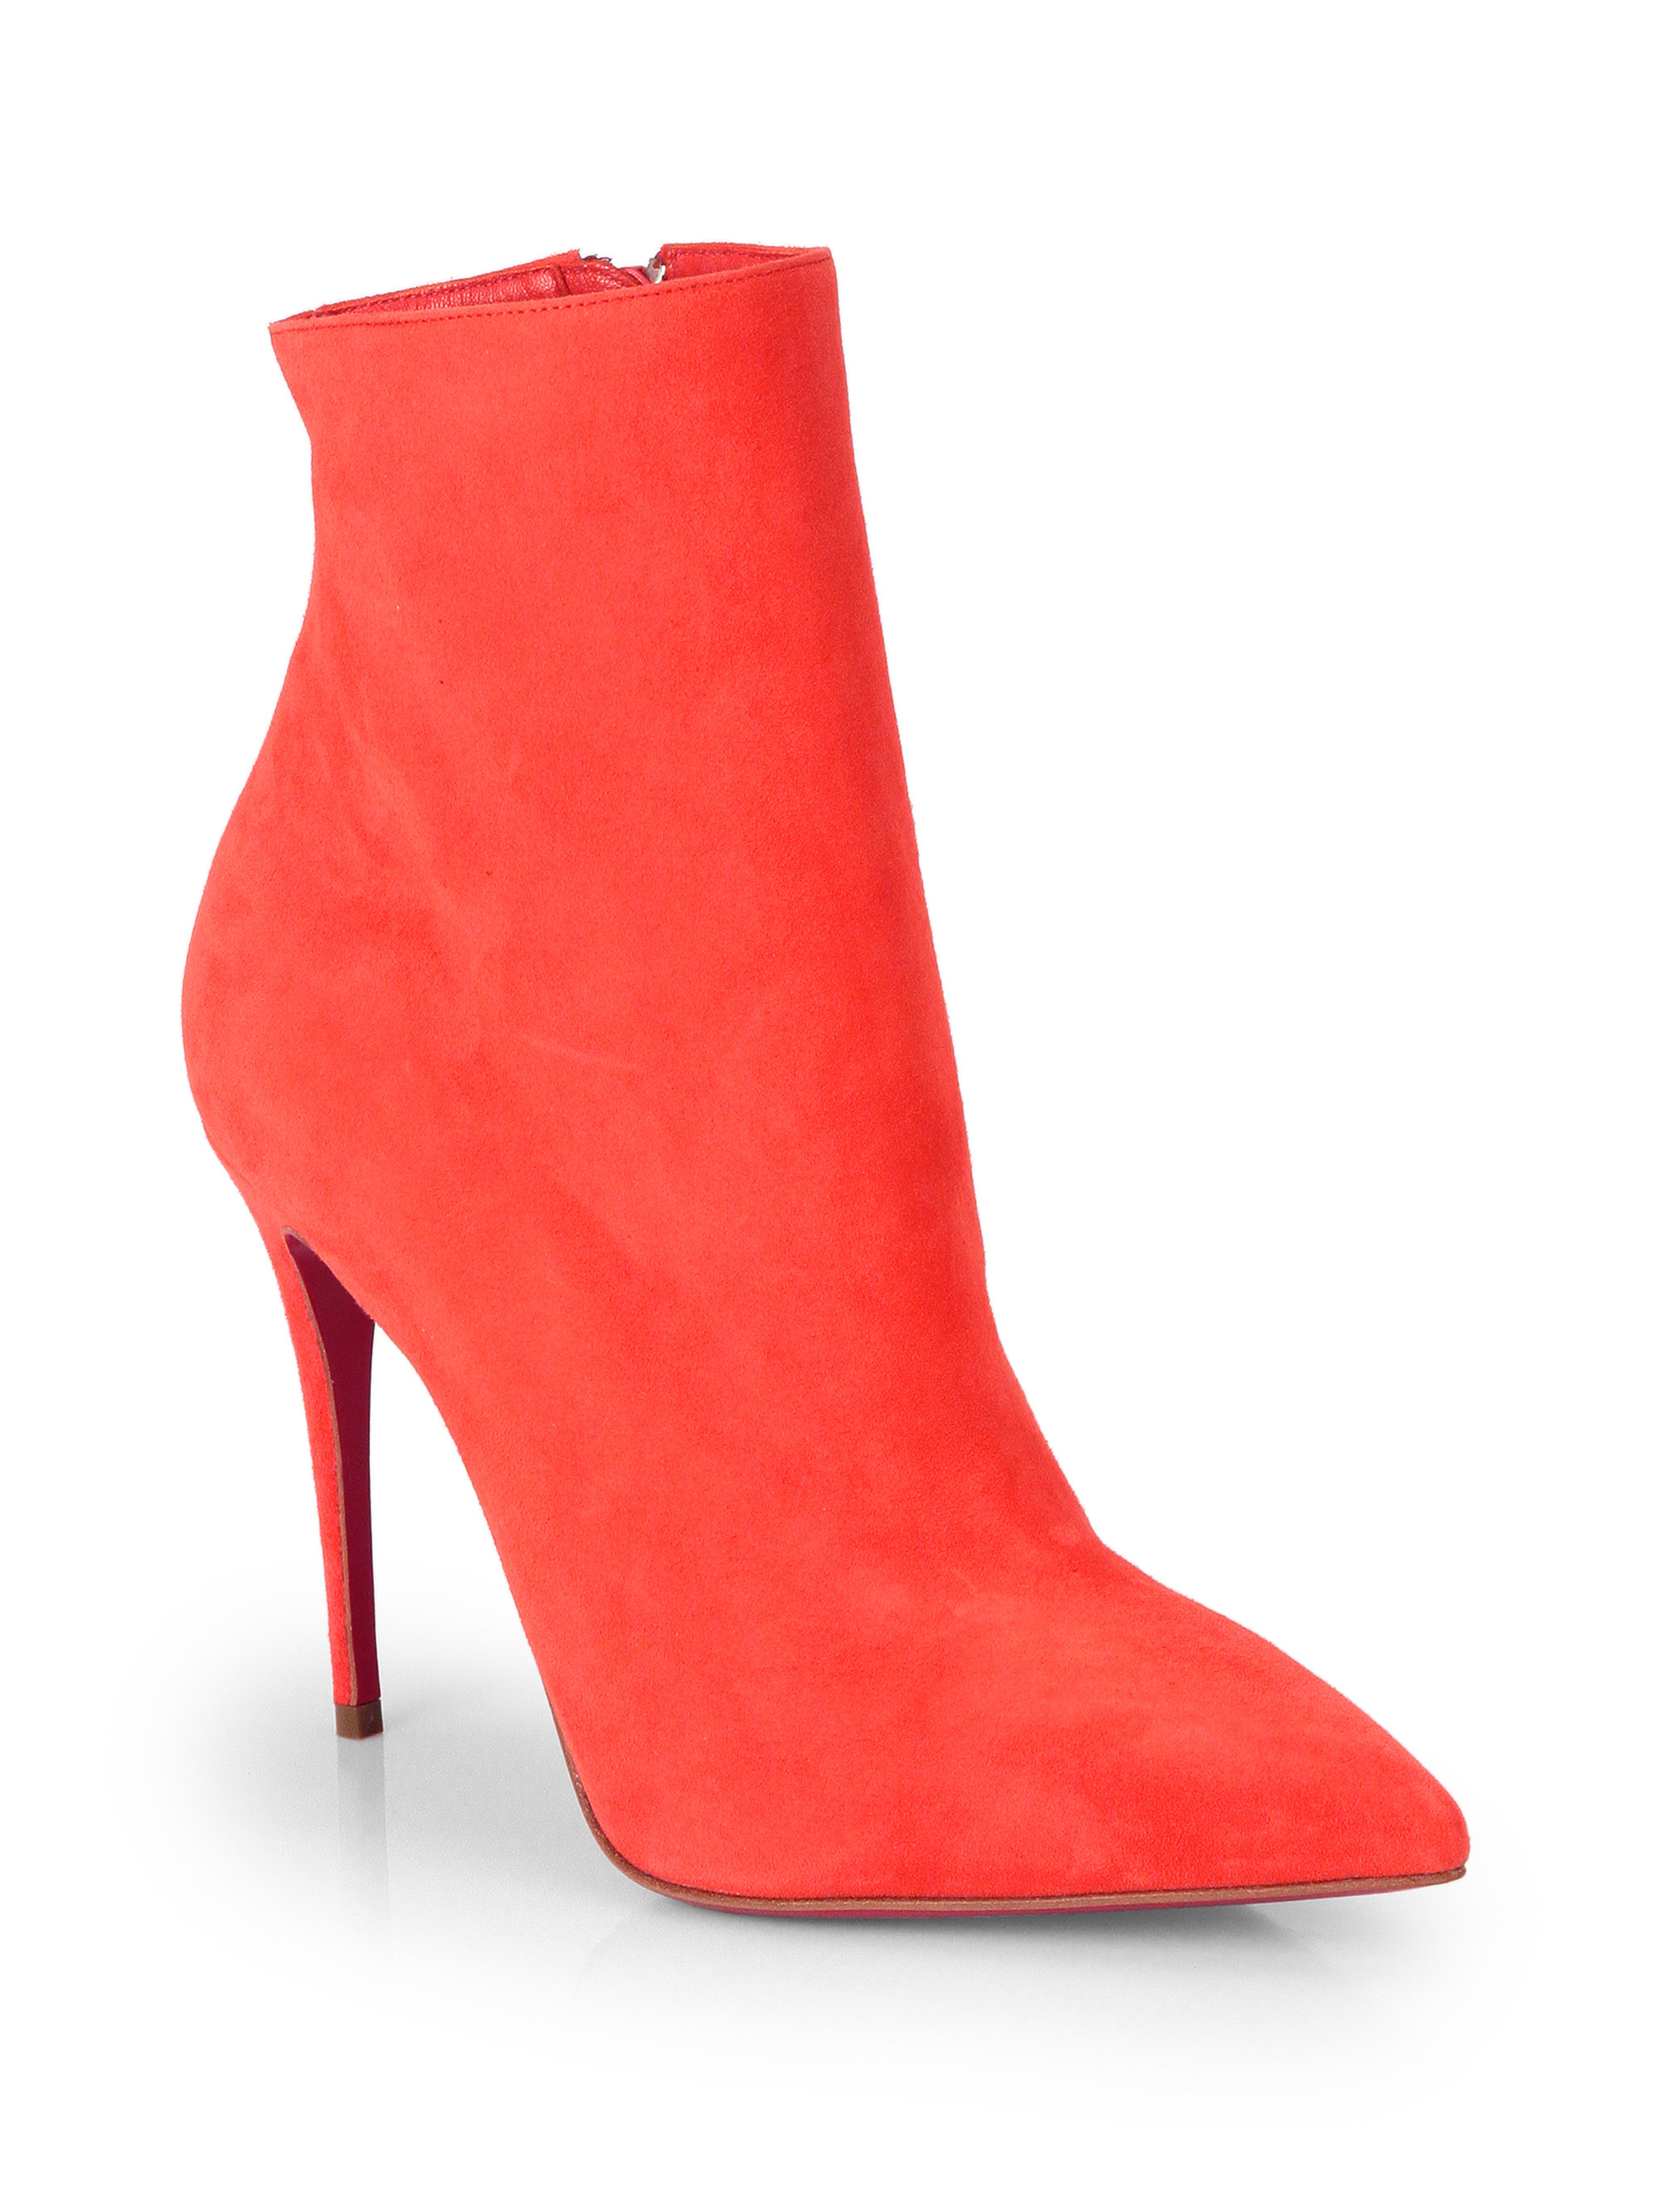 christian louboutin ankle boots Grey suede covered heels ...